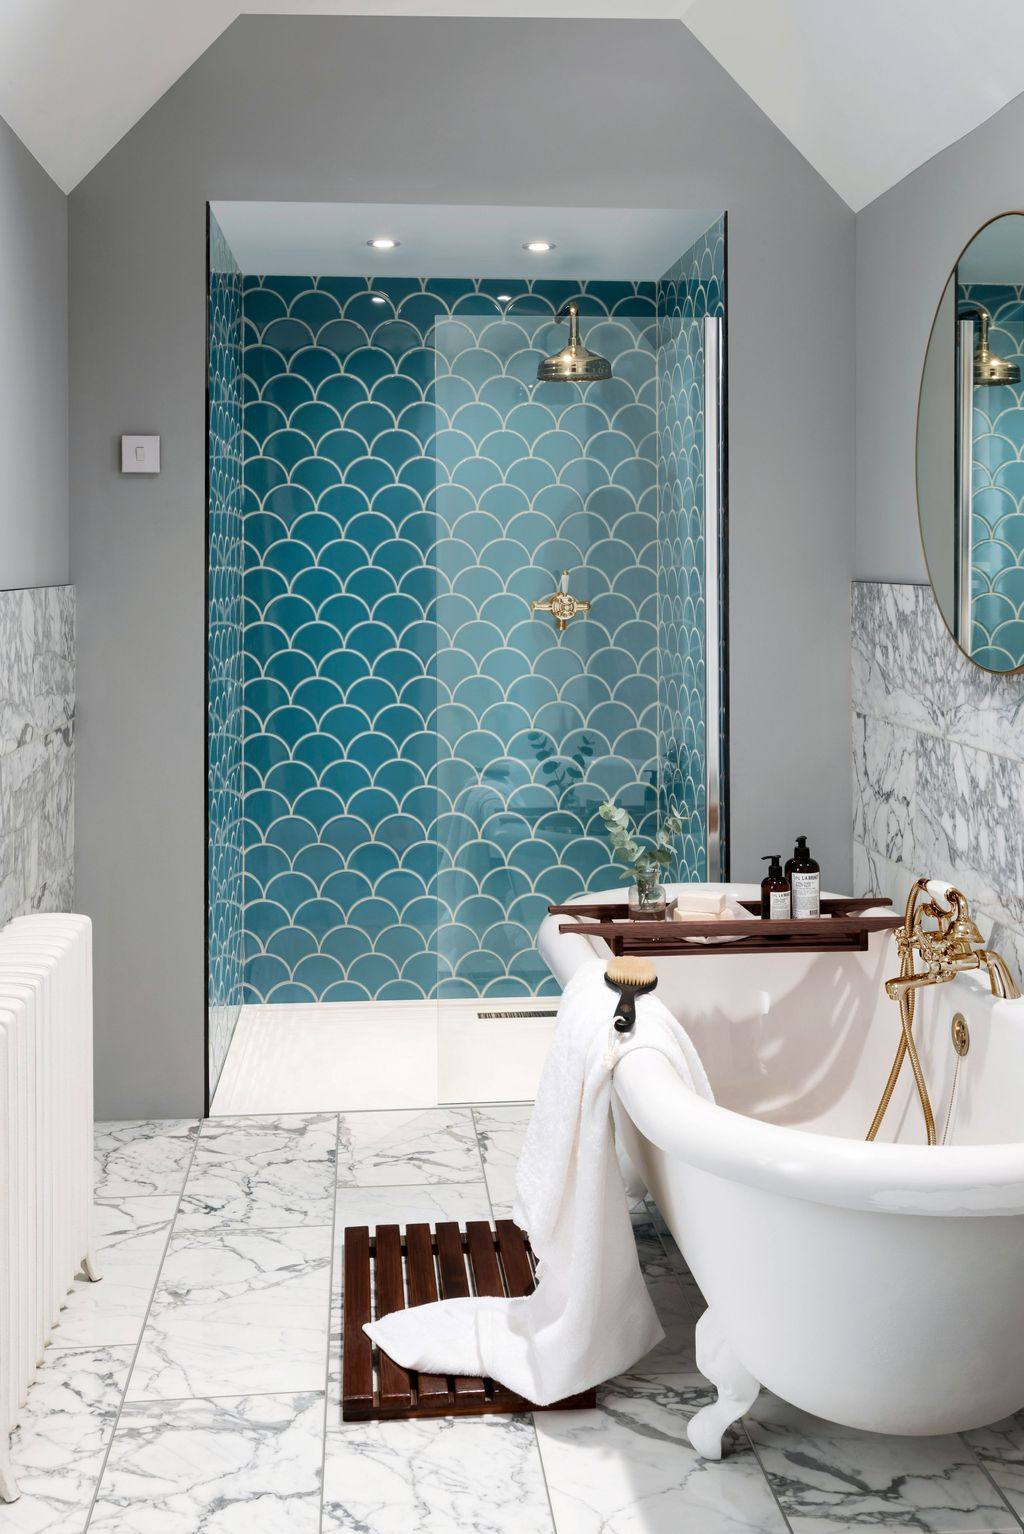 Inspiring Bathroom Interior Design Ideas 15